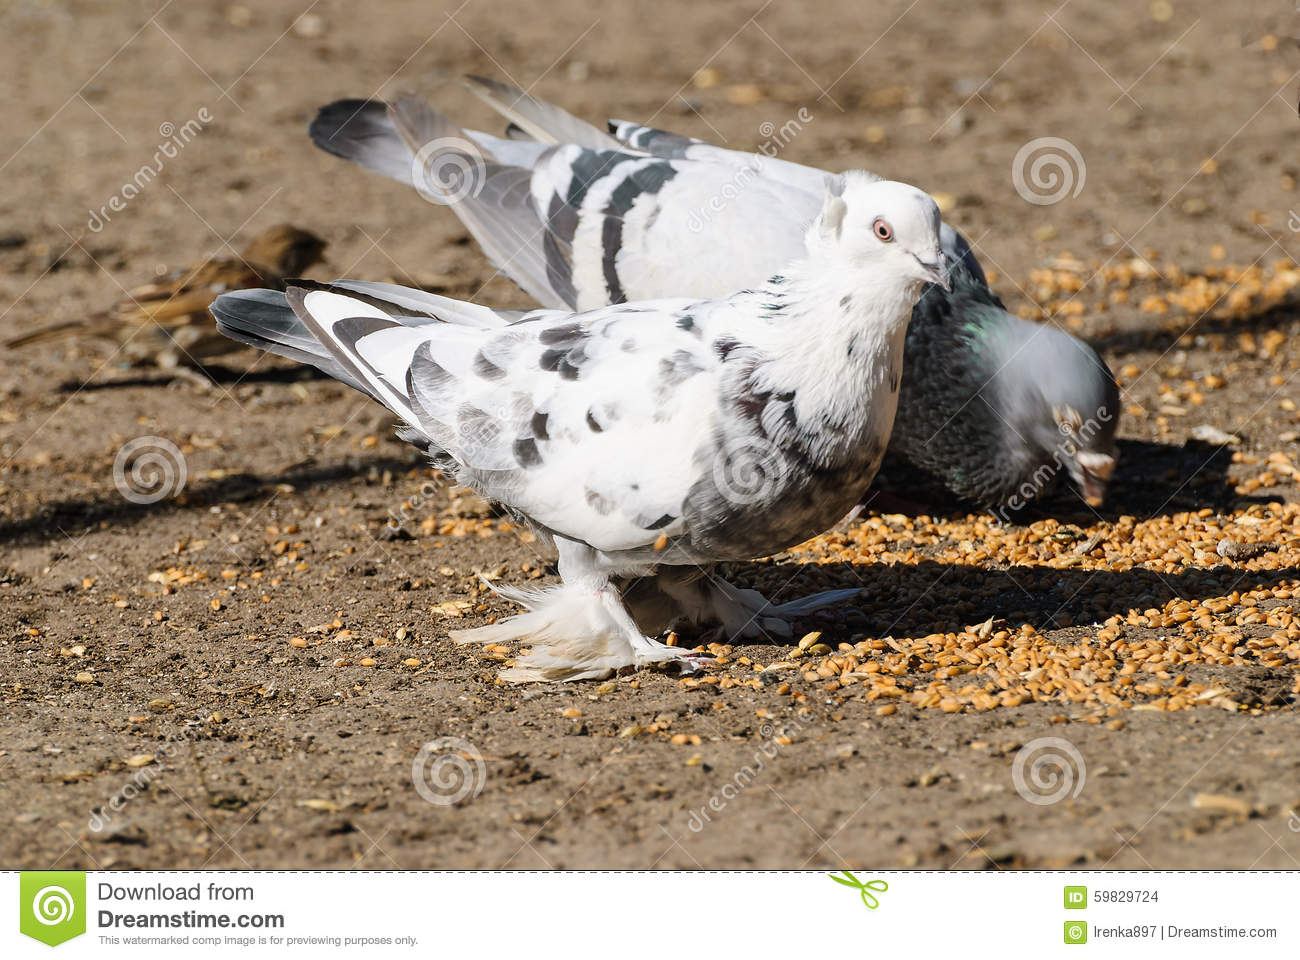 How to Eat Dove or Pigeon